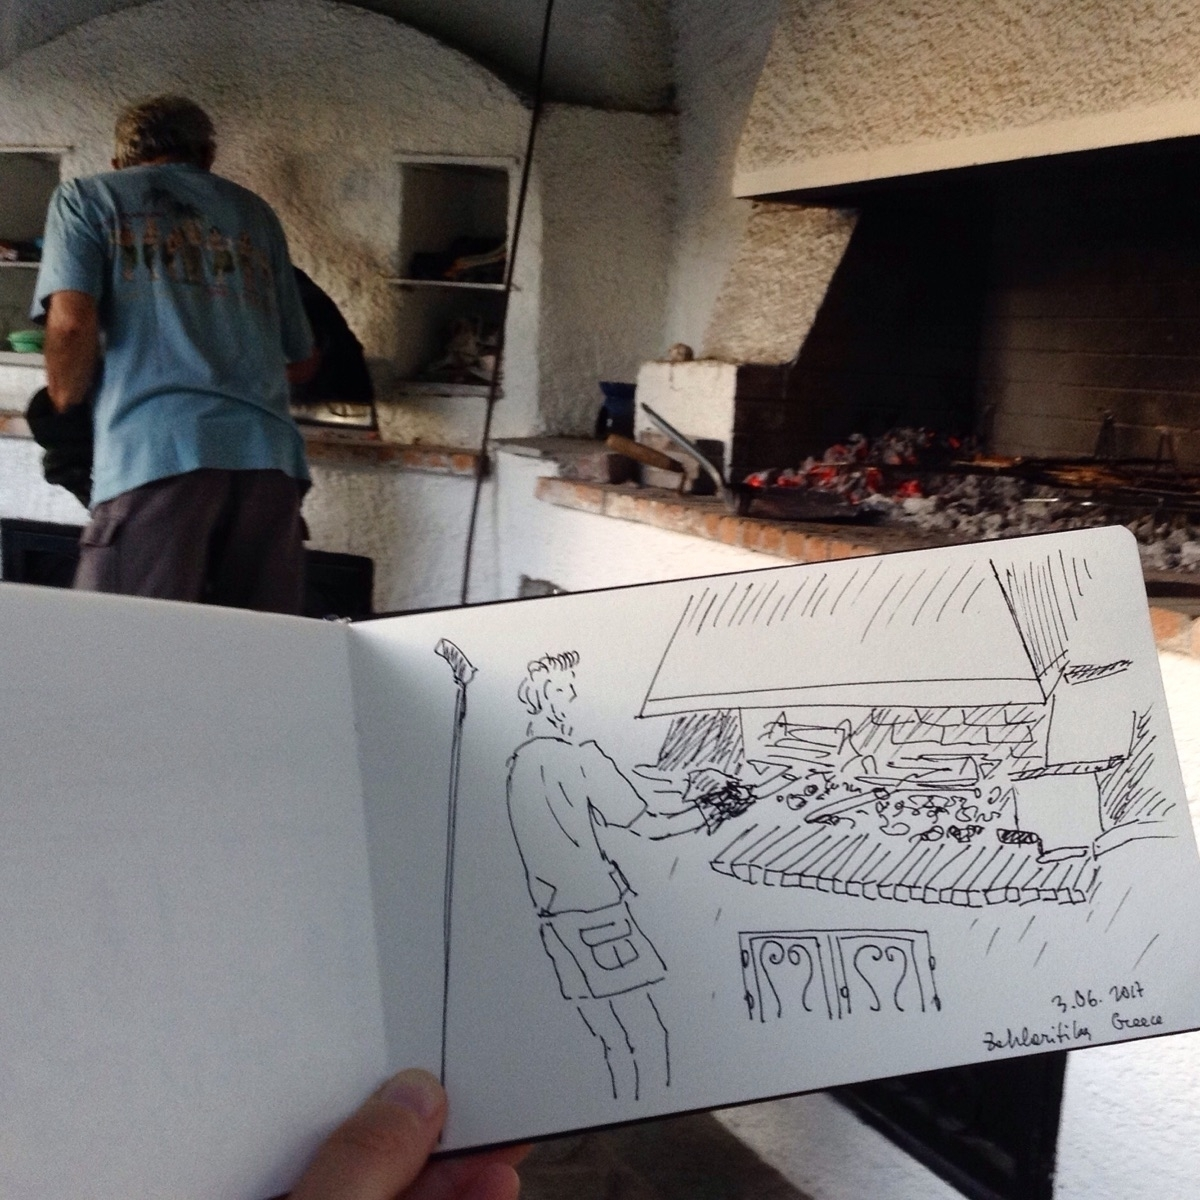 Reporting live cooking scene  - sketching - anna_bki | ello